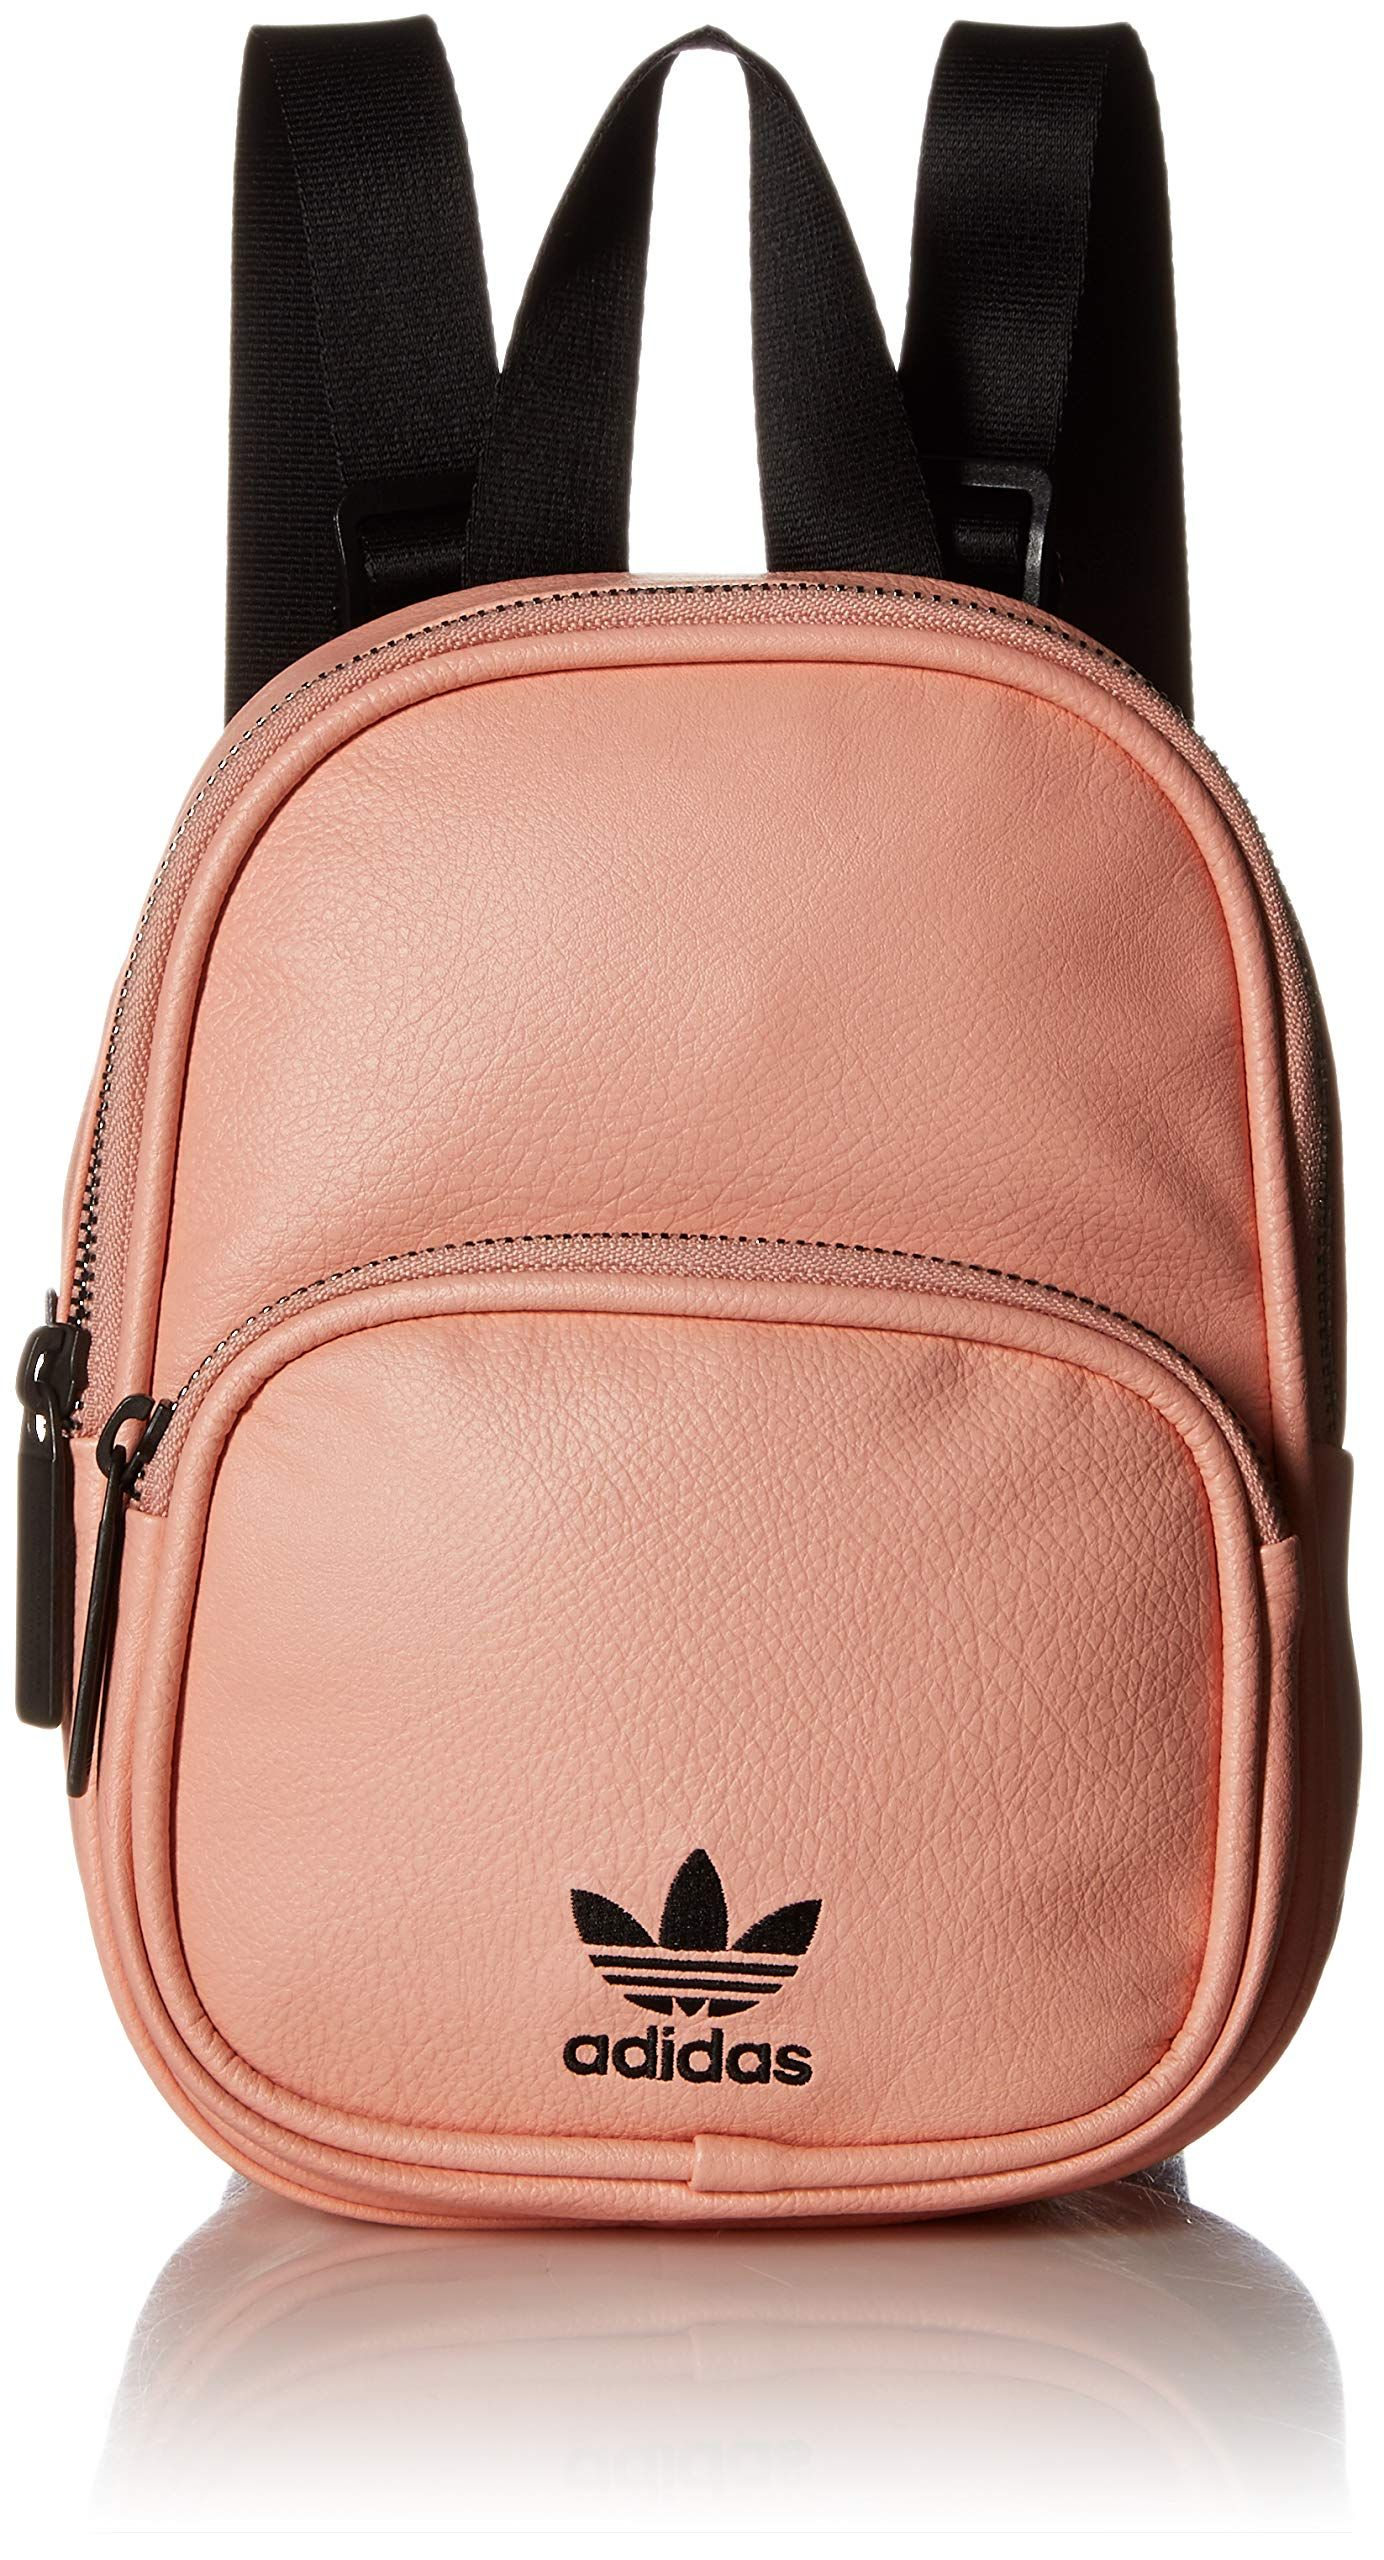 Adidas Mini Leather Backpack Mini Leather Backpack Best Gifts